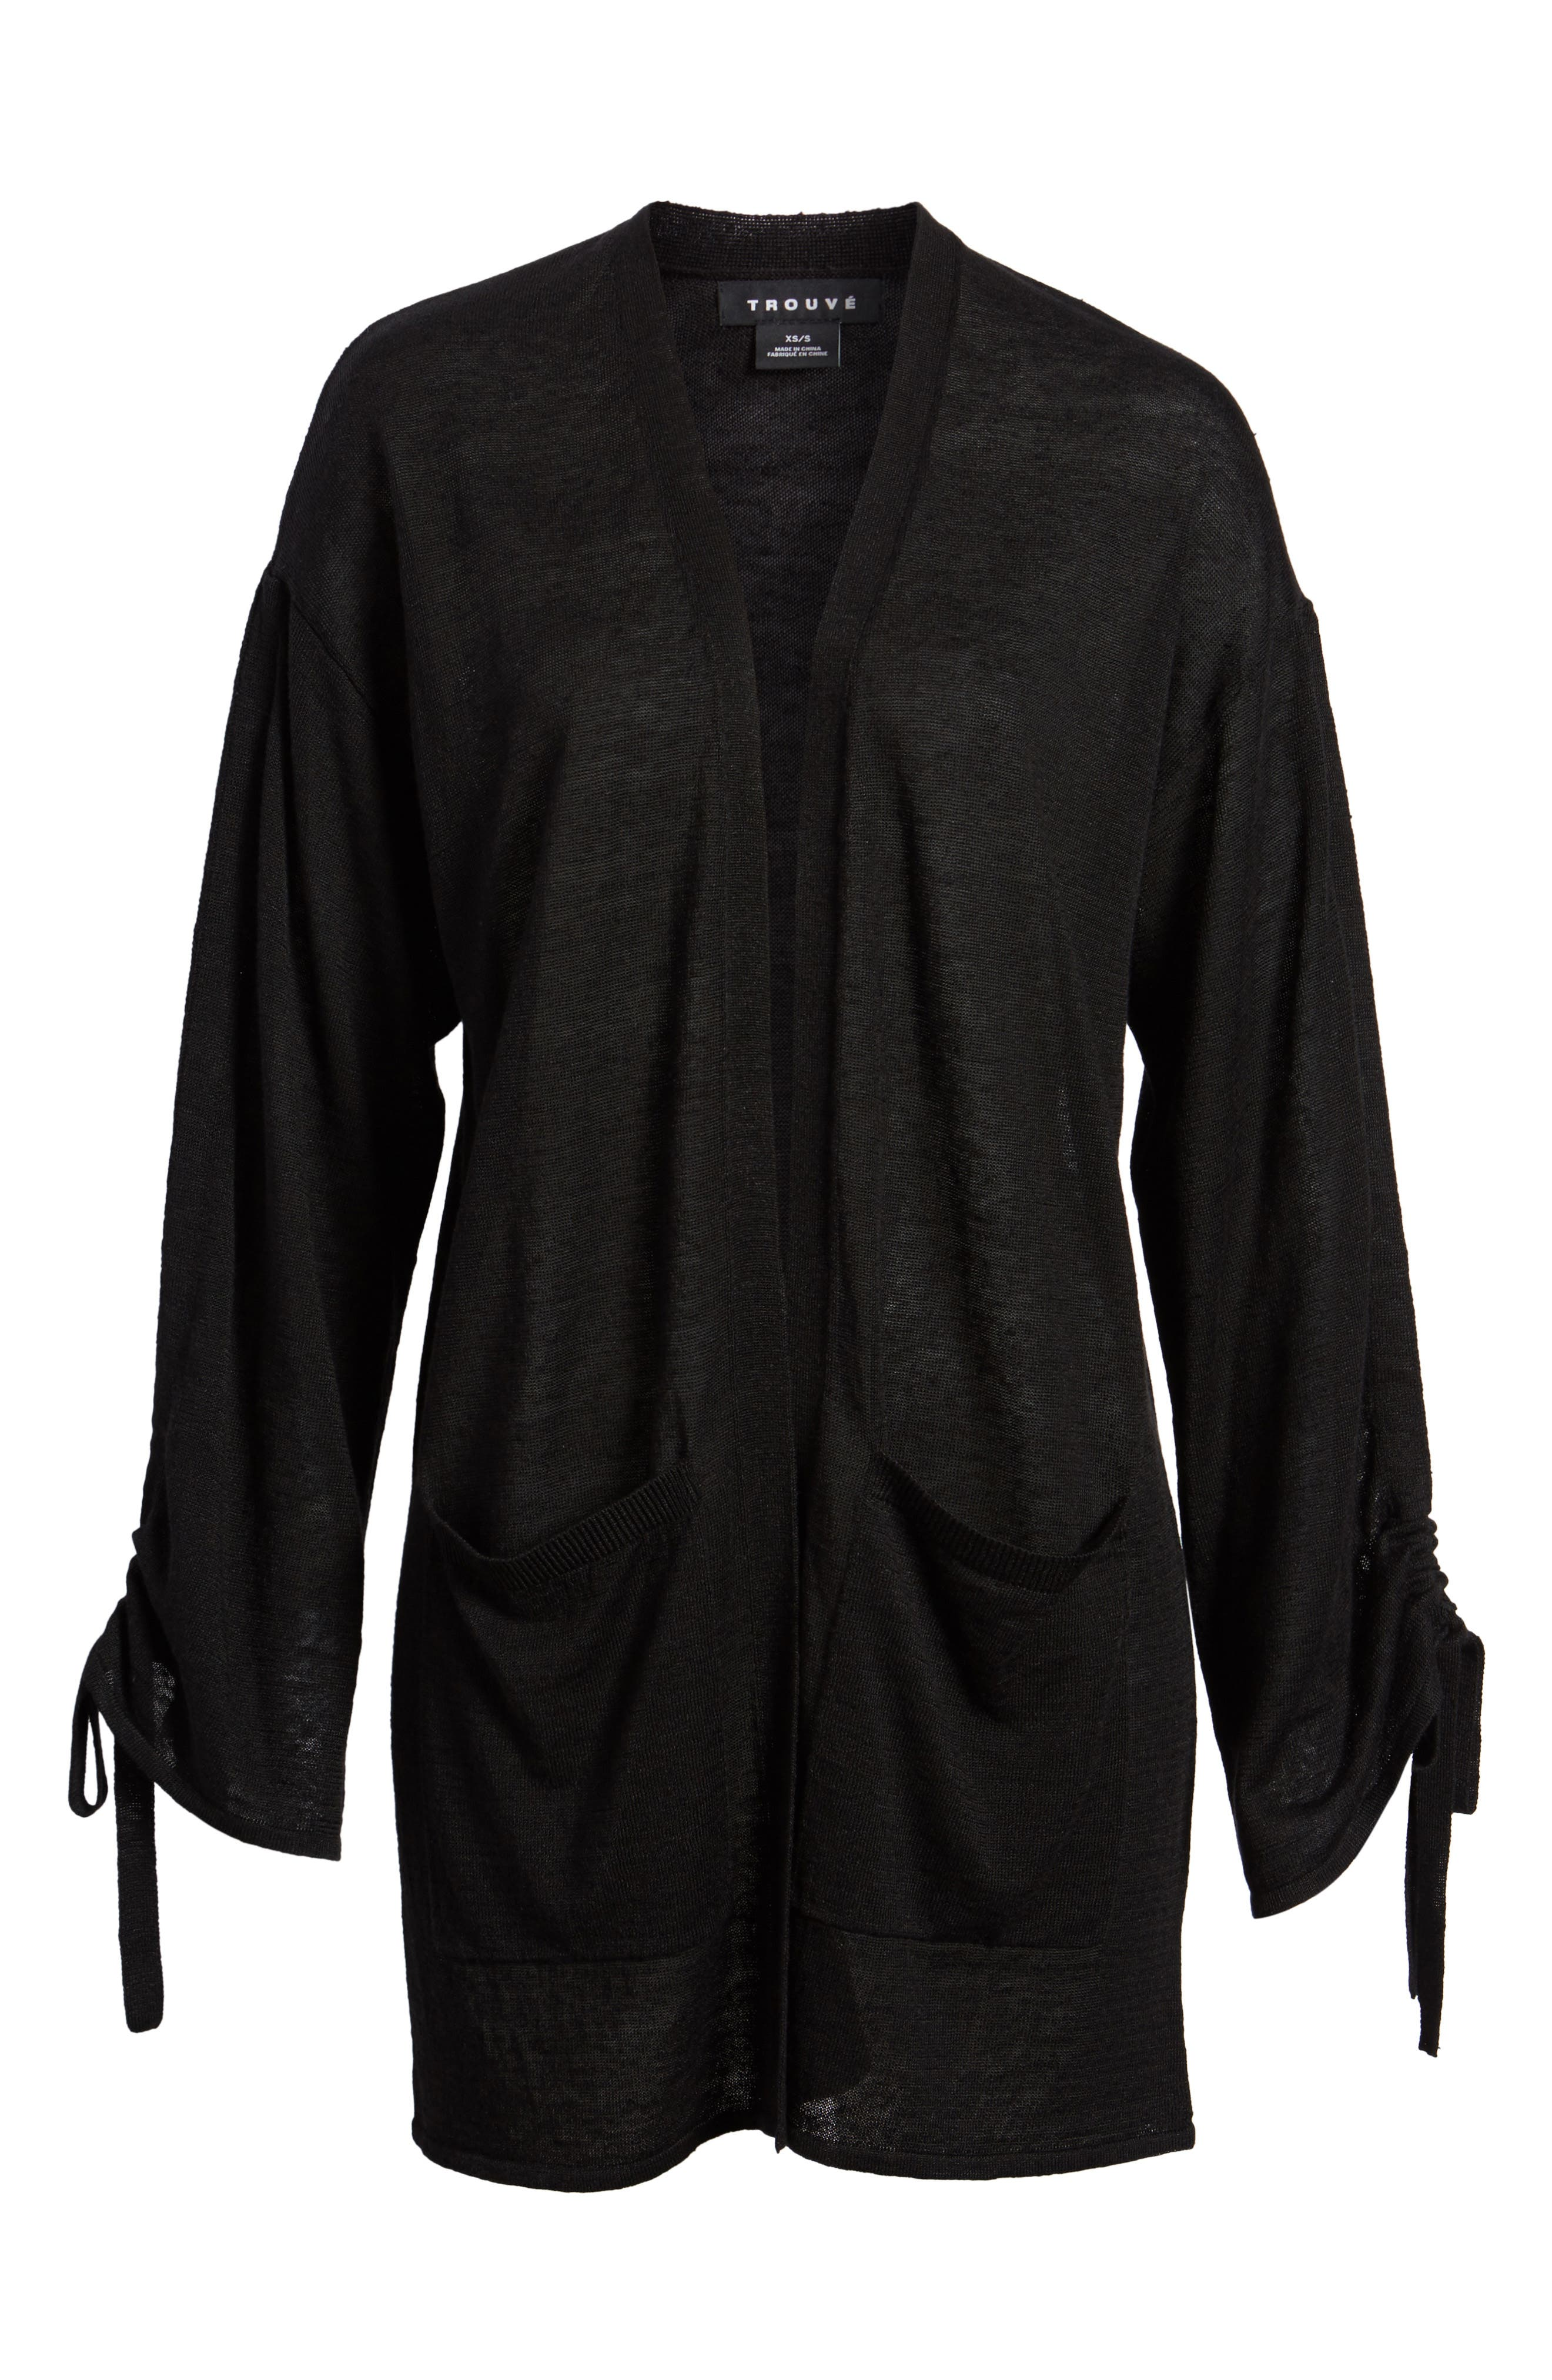 Ruched Sleeve Cardigan,                             Alternate thumbnail 6, color,                             Black